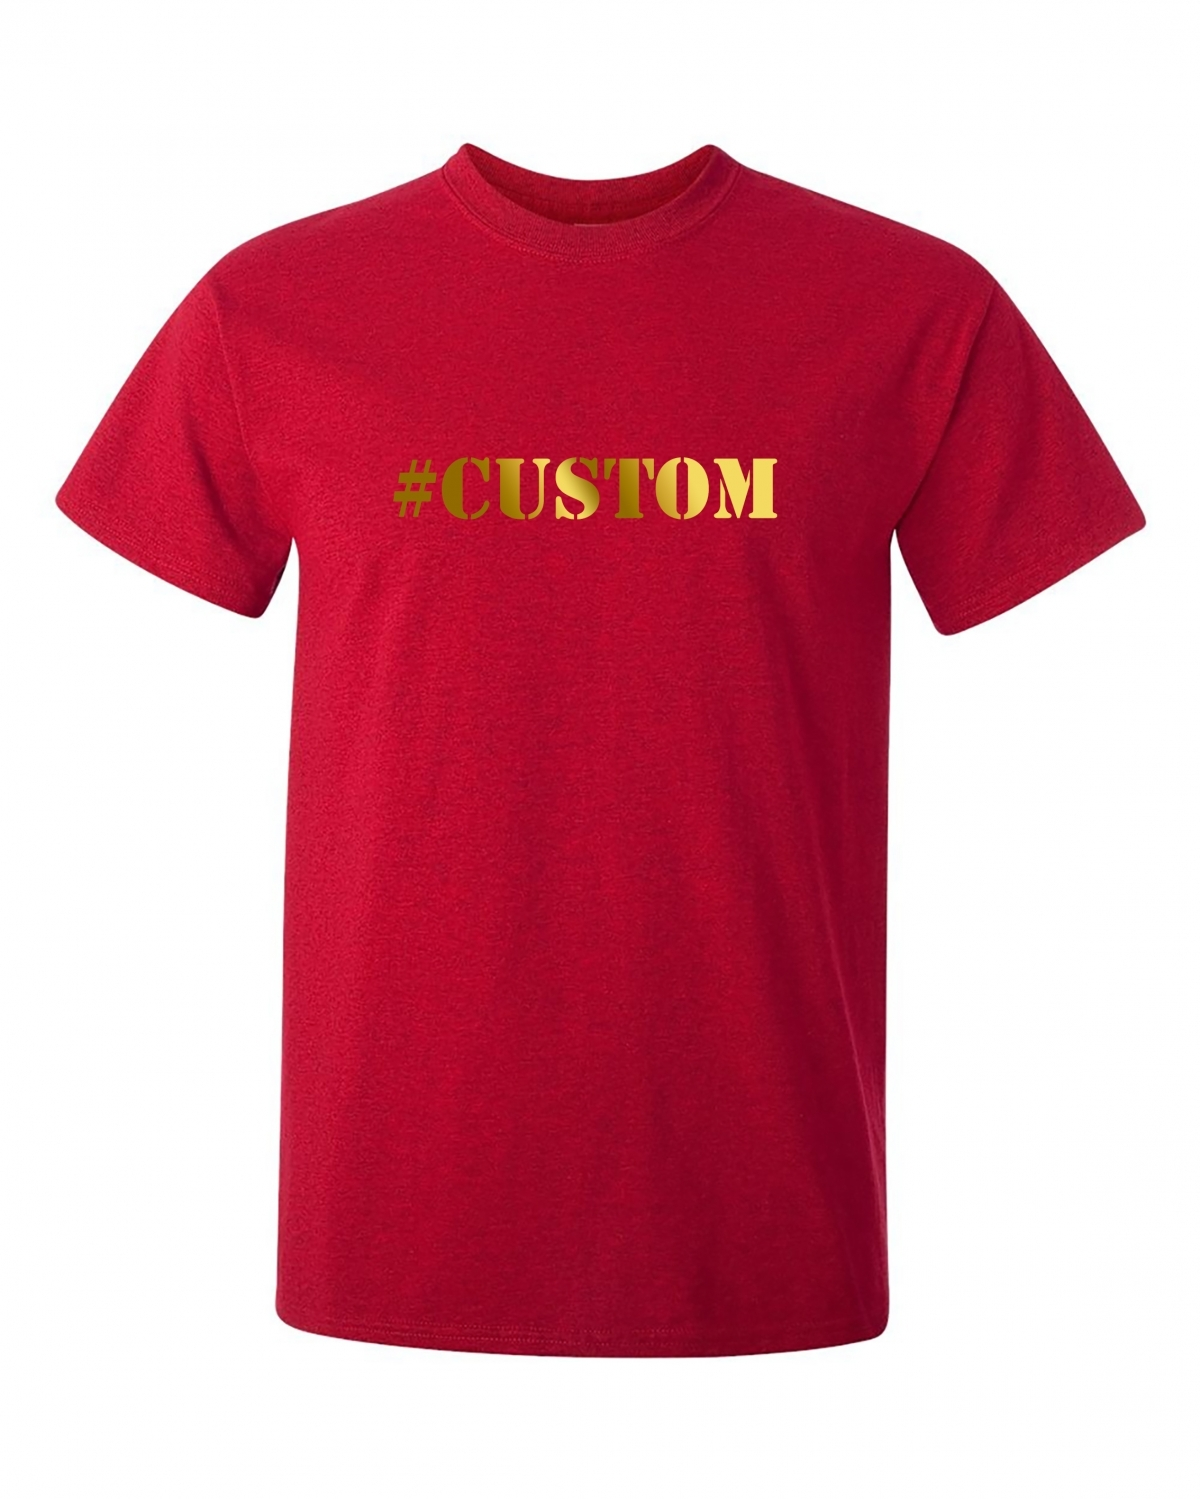 Personalized Hashtag Red T Shirt With Gold Printing Flossy